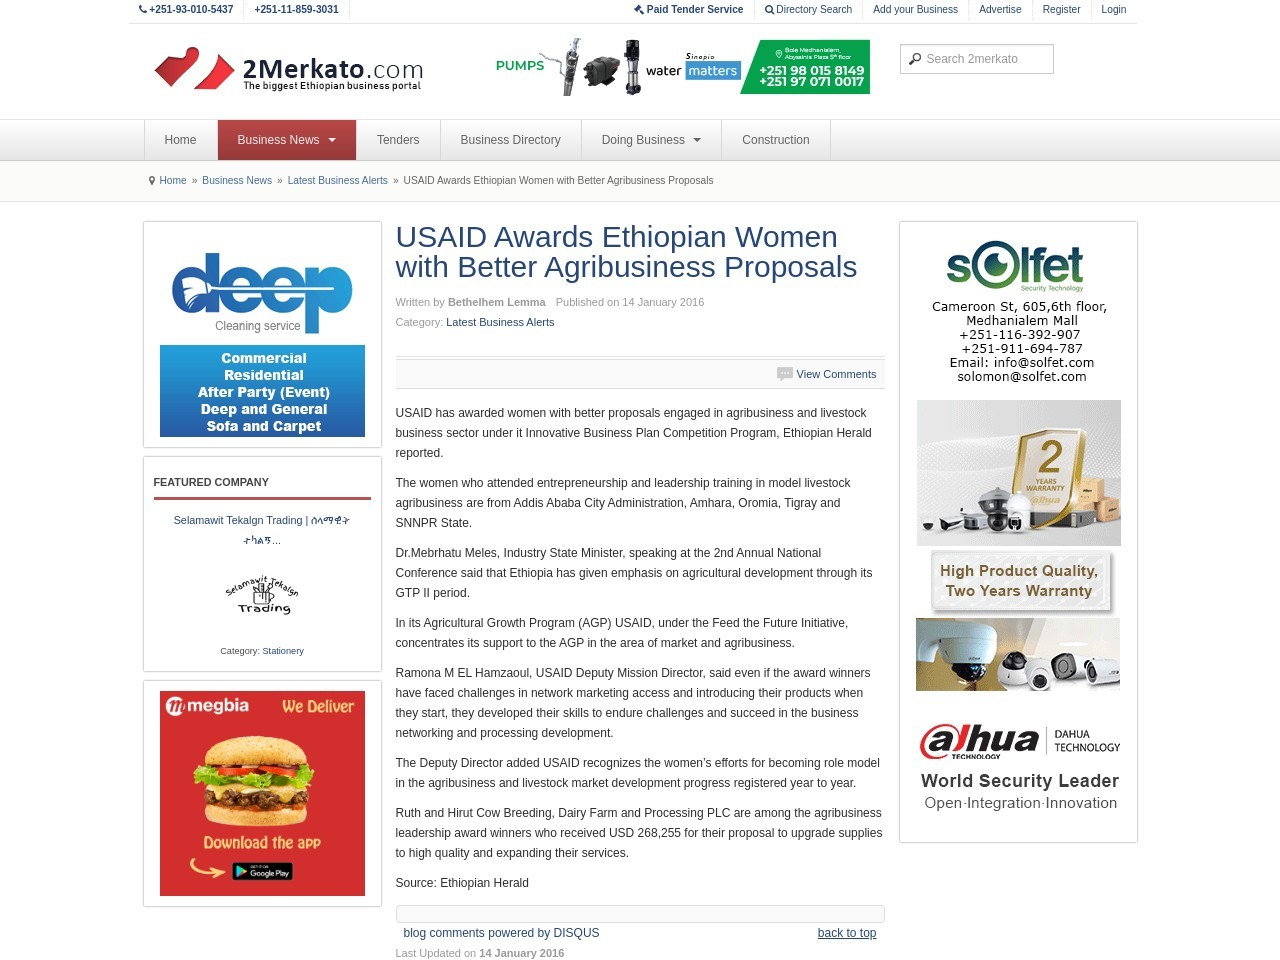 USAID Awards Ethiopian Women for Excelling in Agribusiness Leadership